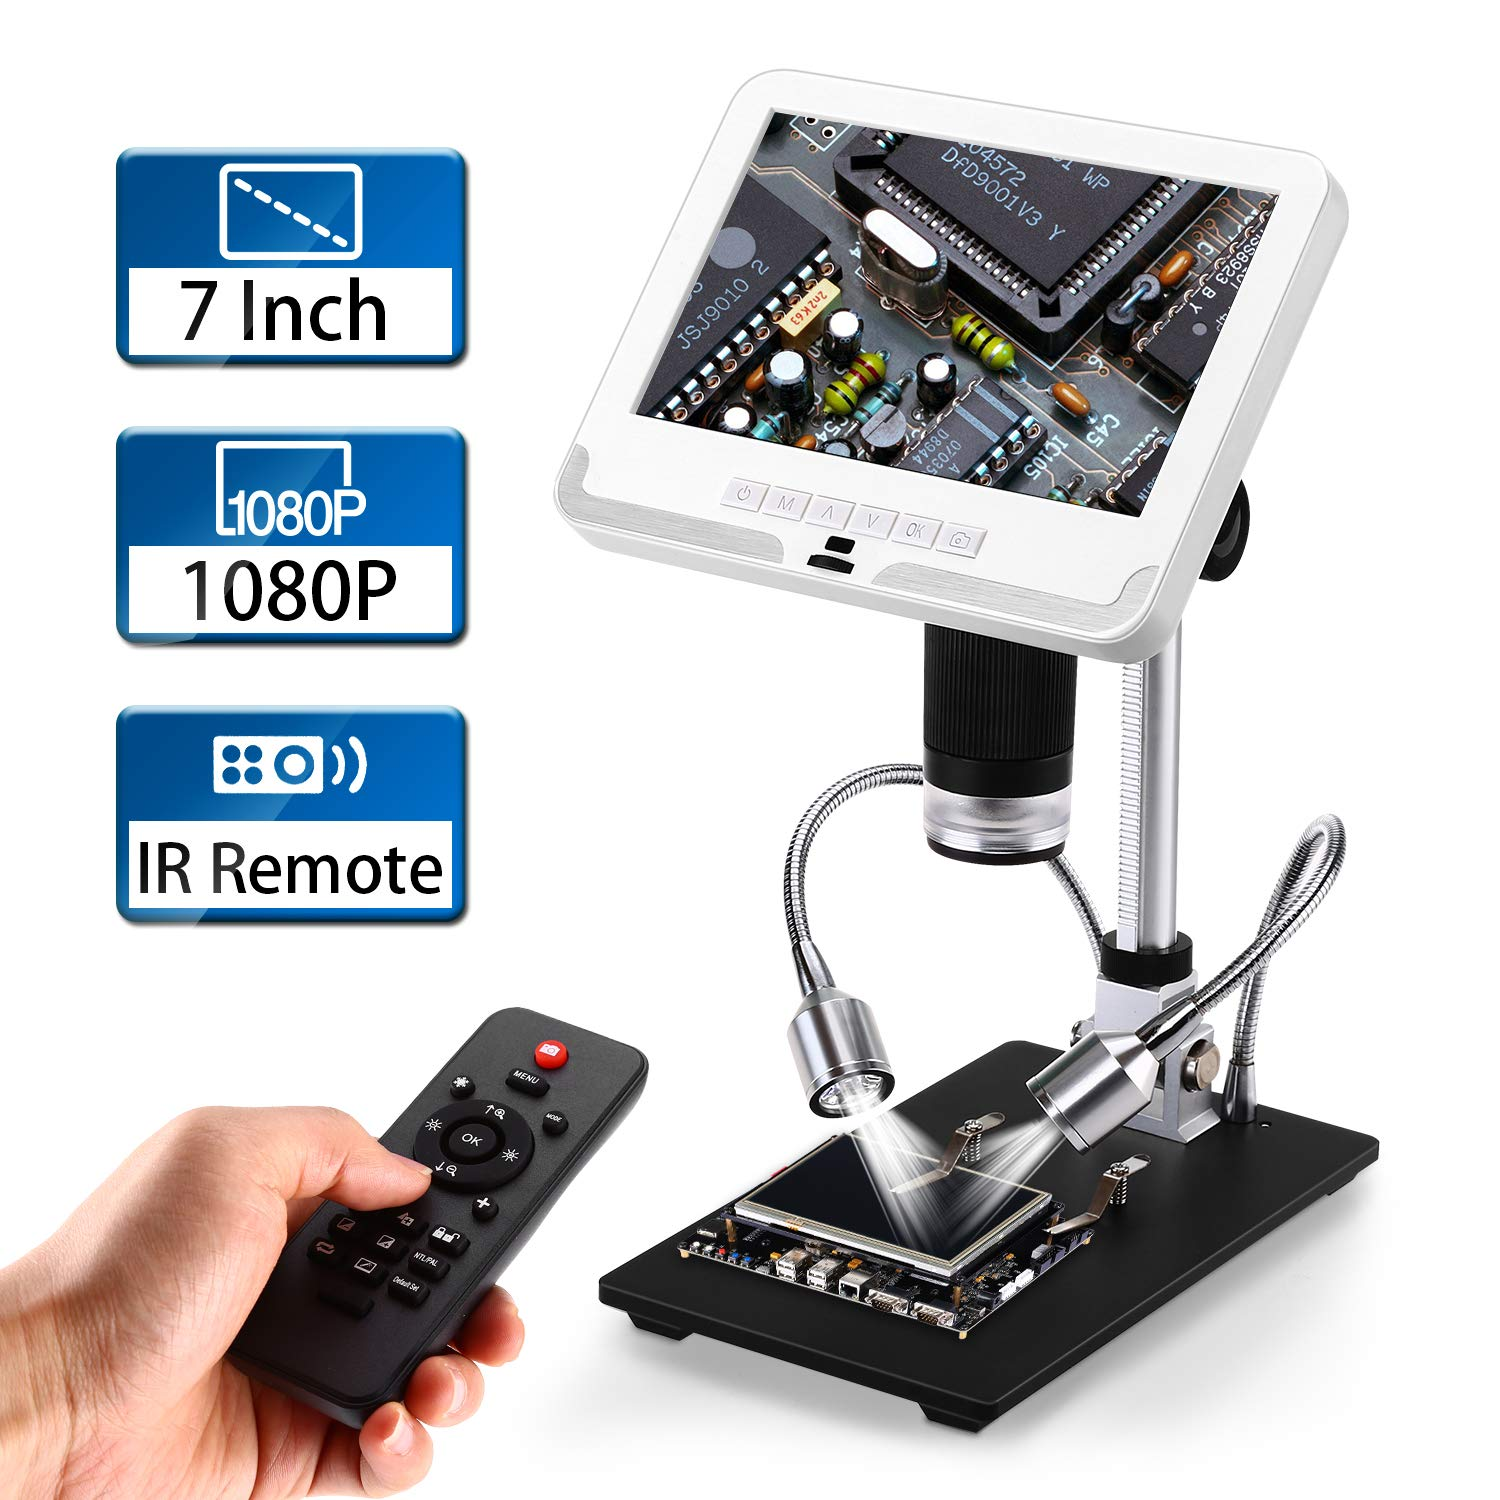 7 inch LCD Digital Microscope, Elikliv 1080P USB Microscope Camera Lens 2MP Video Recorder with Wireless IR Remote,UV Filter 200X Magnification,Adjustable Stand,8 LED Lights